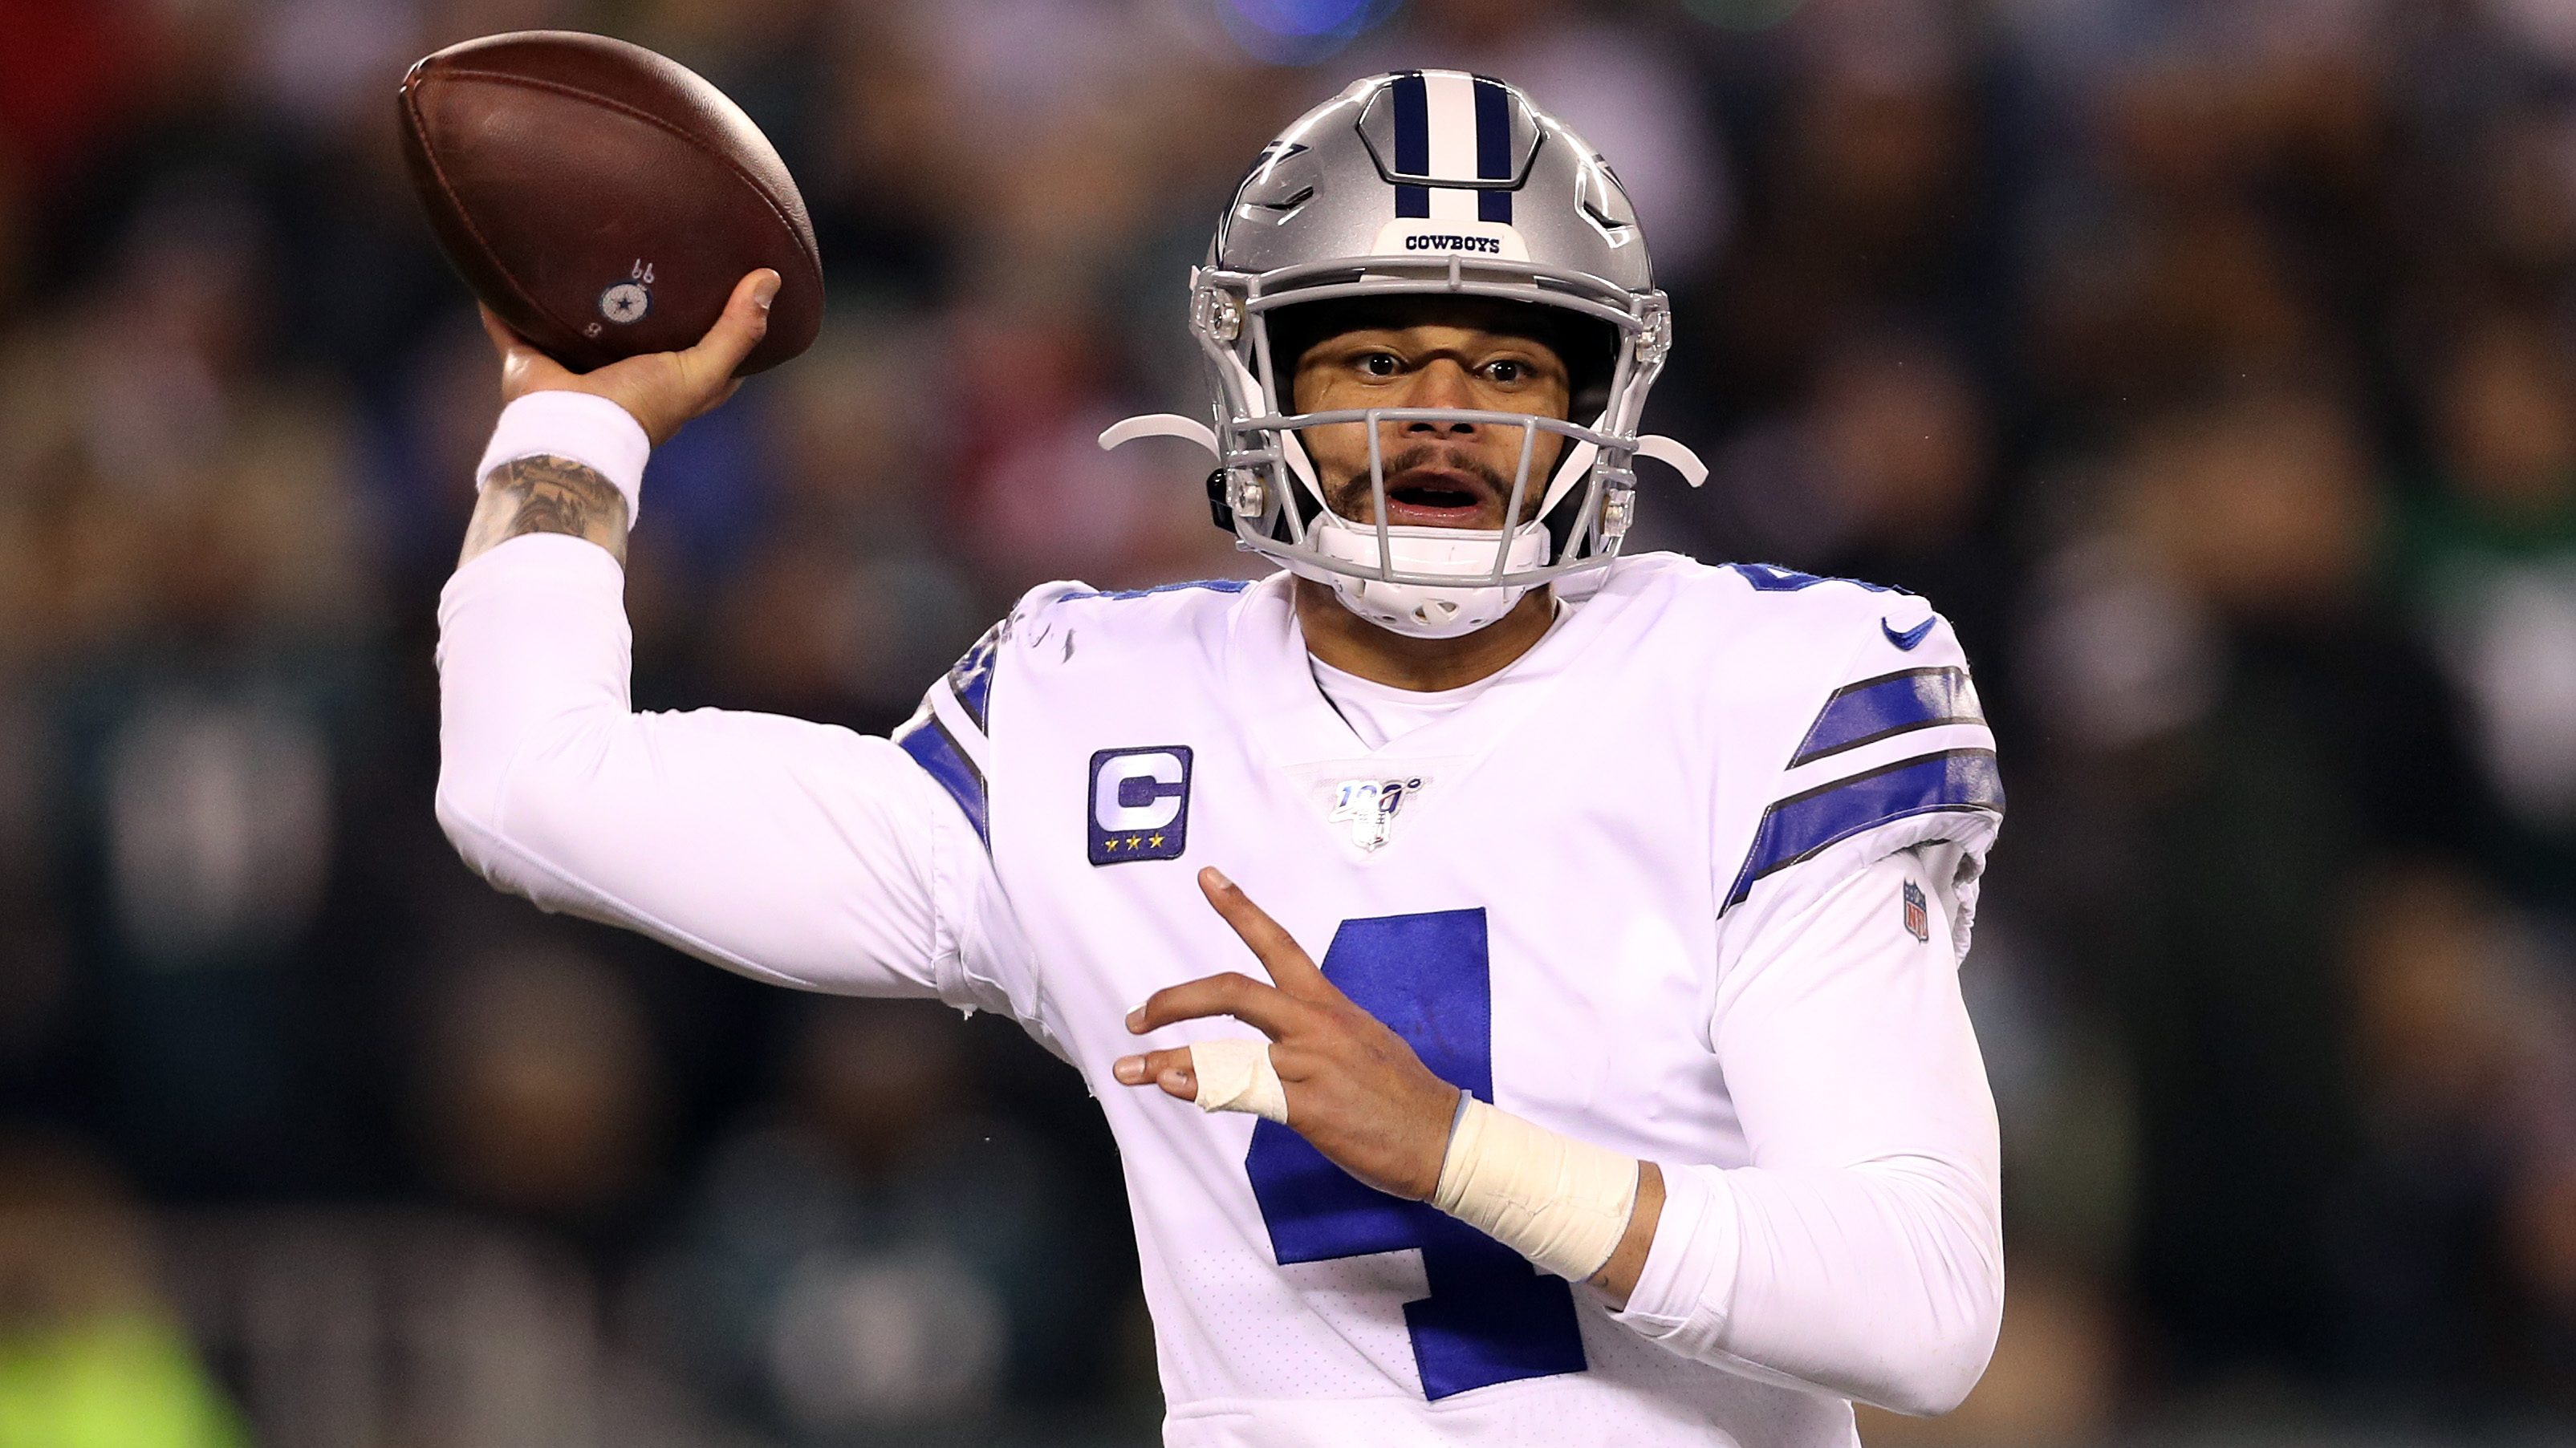 'Look Out': Cowboys to Tag and Trade Dak Prescott to NFC Rival?